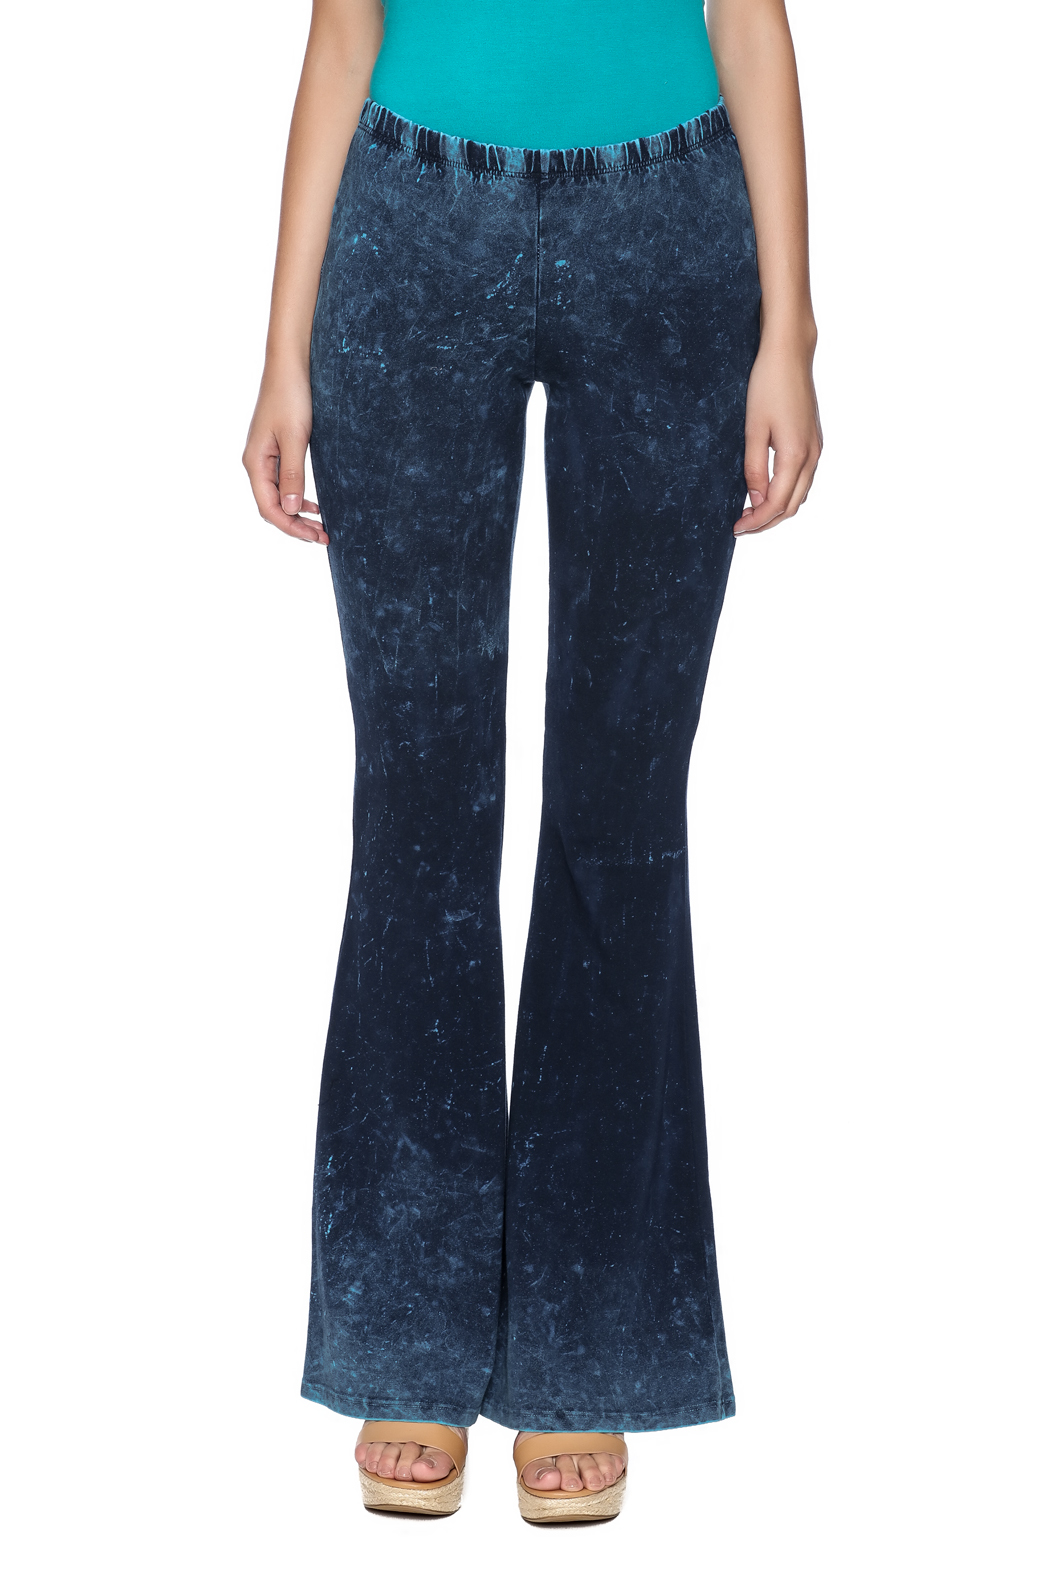 Chatoyant  Galaxy Bell Bottoms - Side Cropped Image